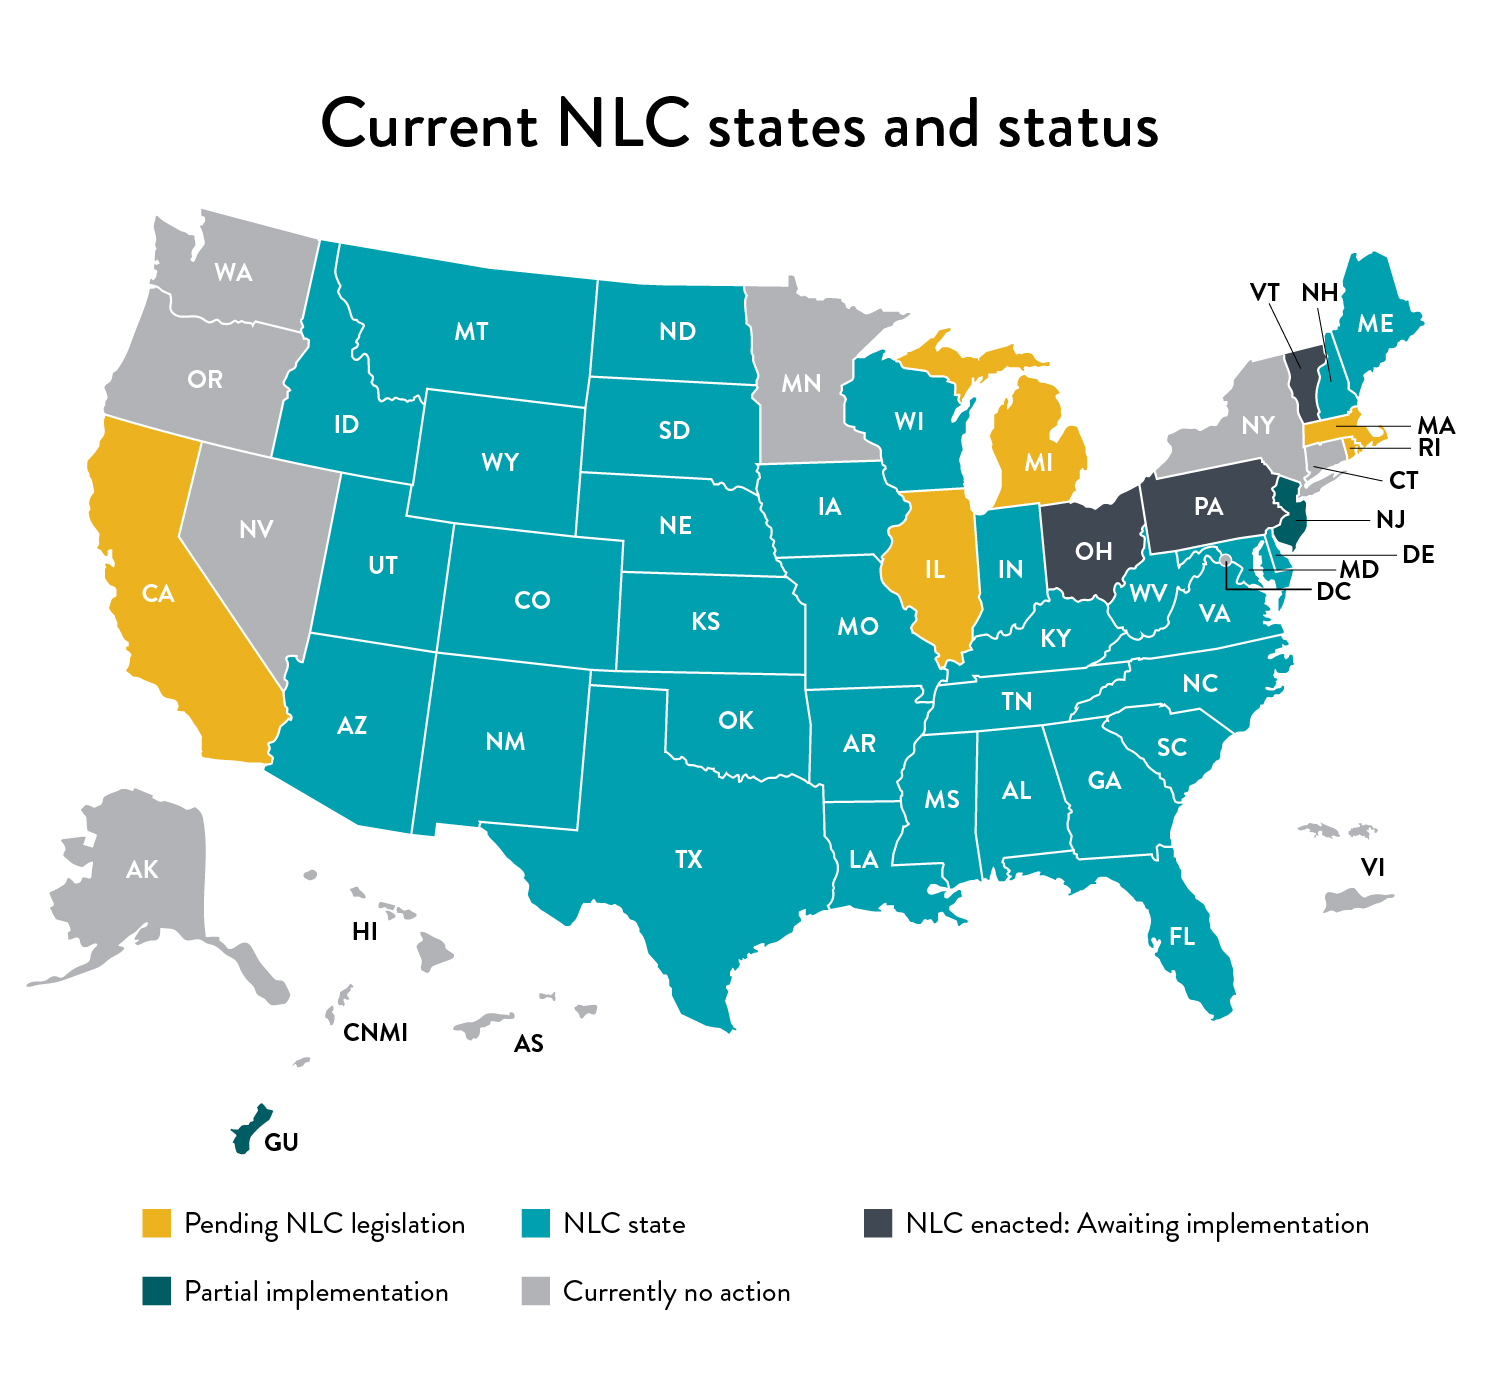 NLC states map as of 7/2/2021